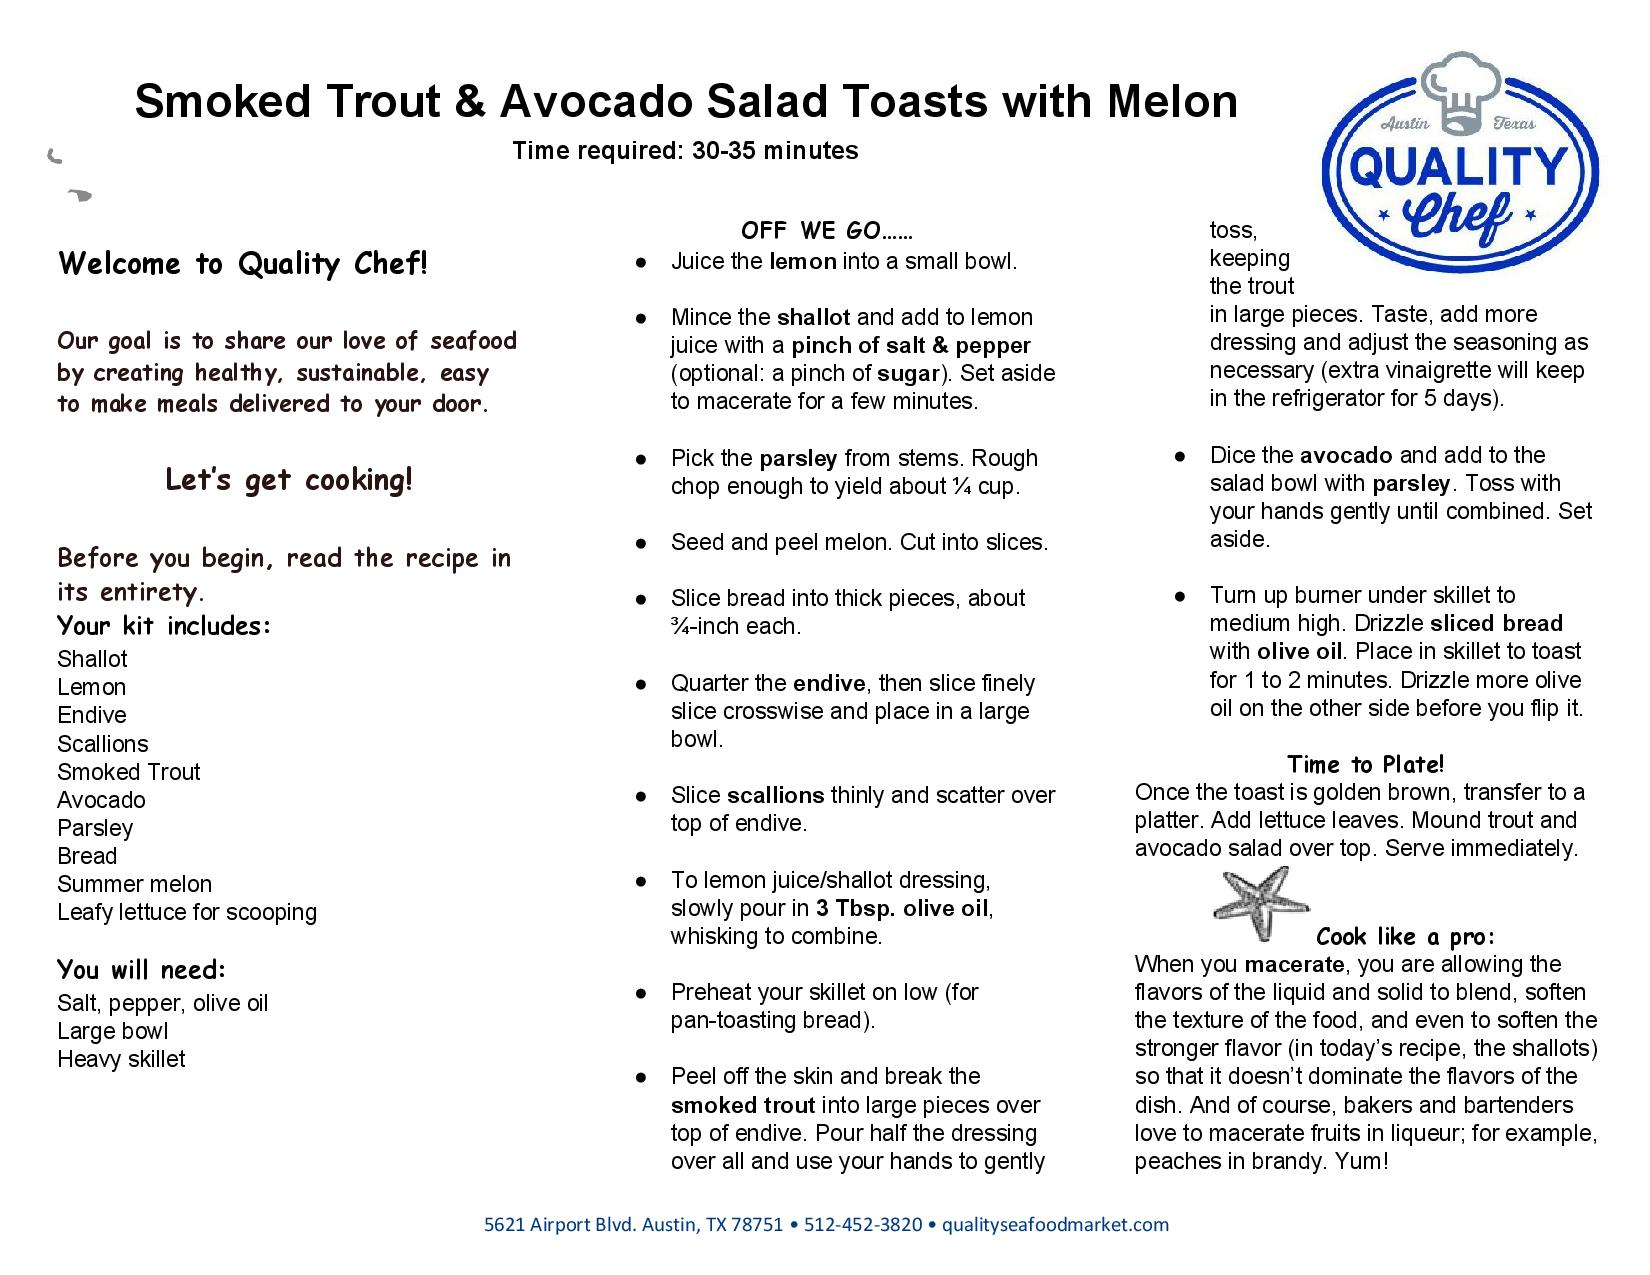 QC Smoked Trout  Avocado Salad Toasts with Melon-page-001 (2).jpg